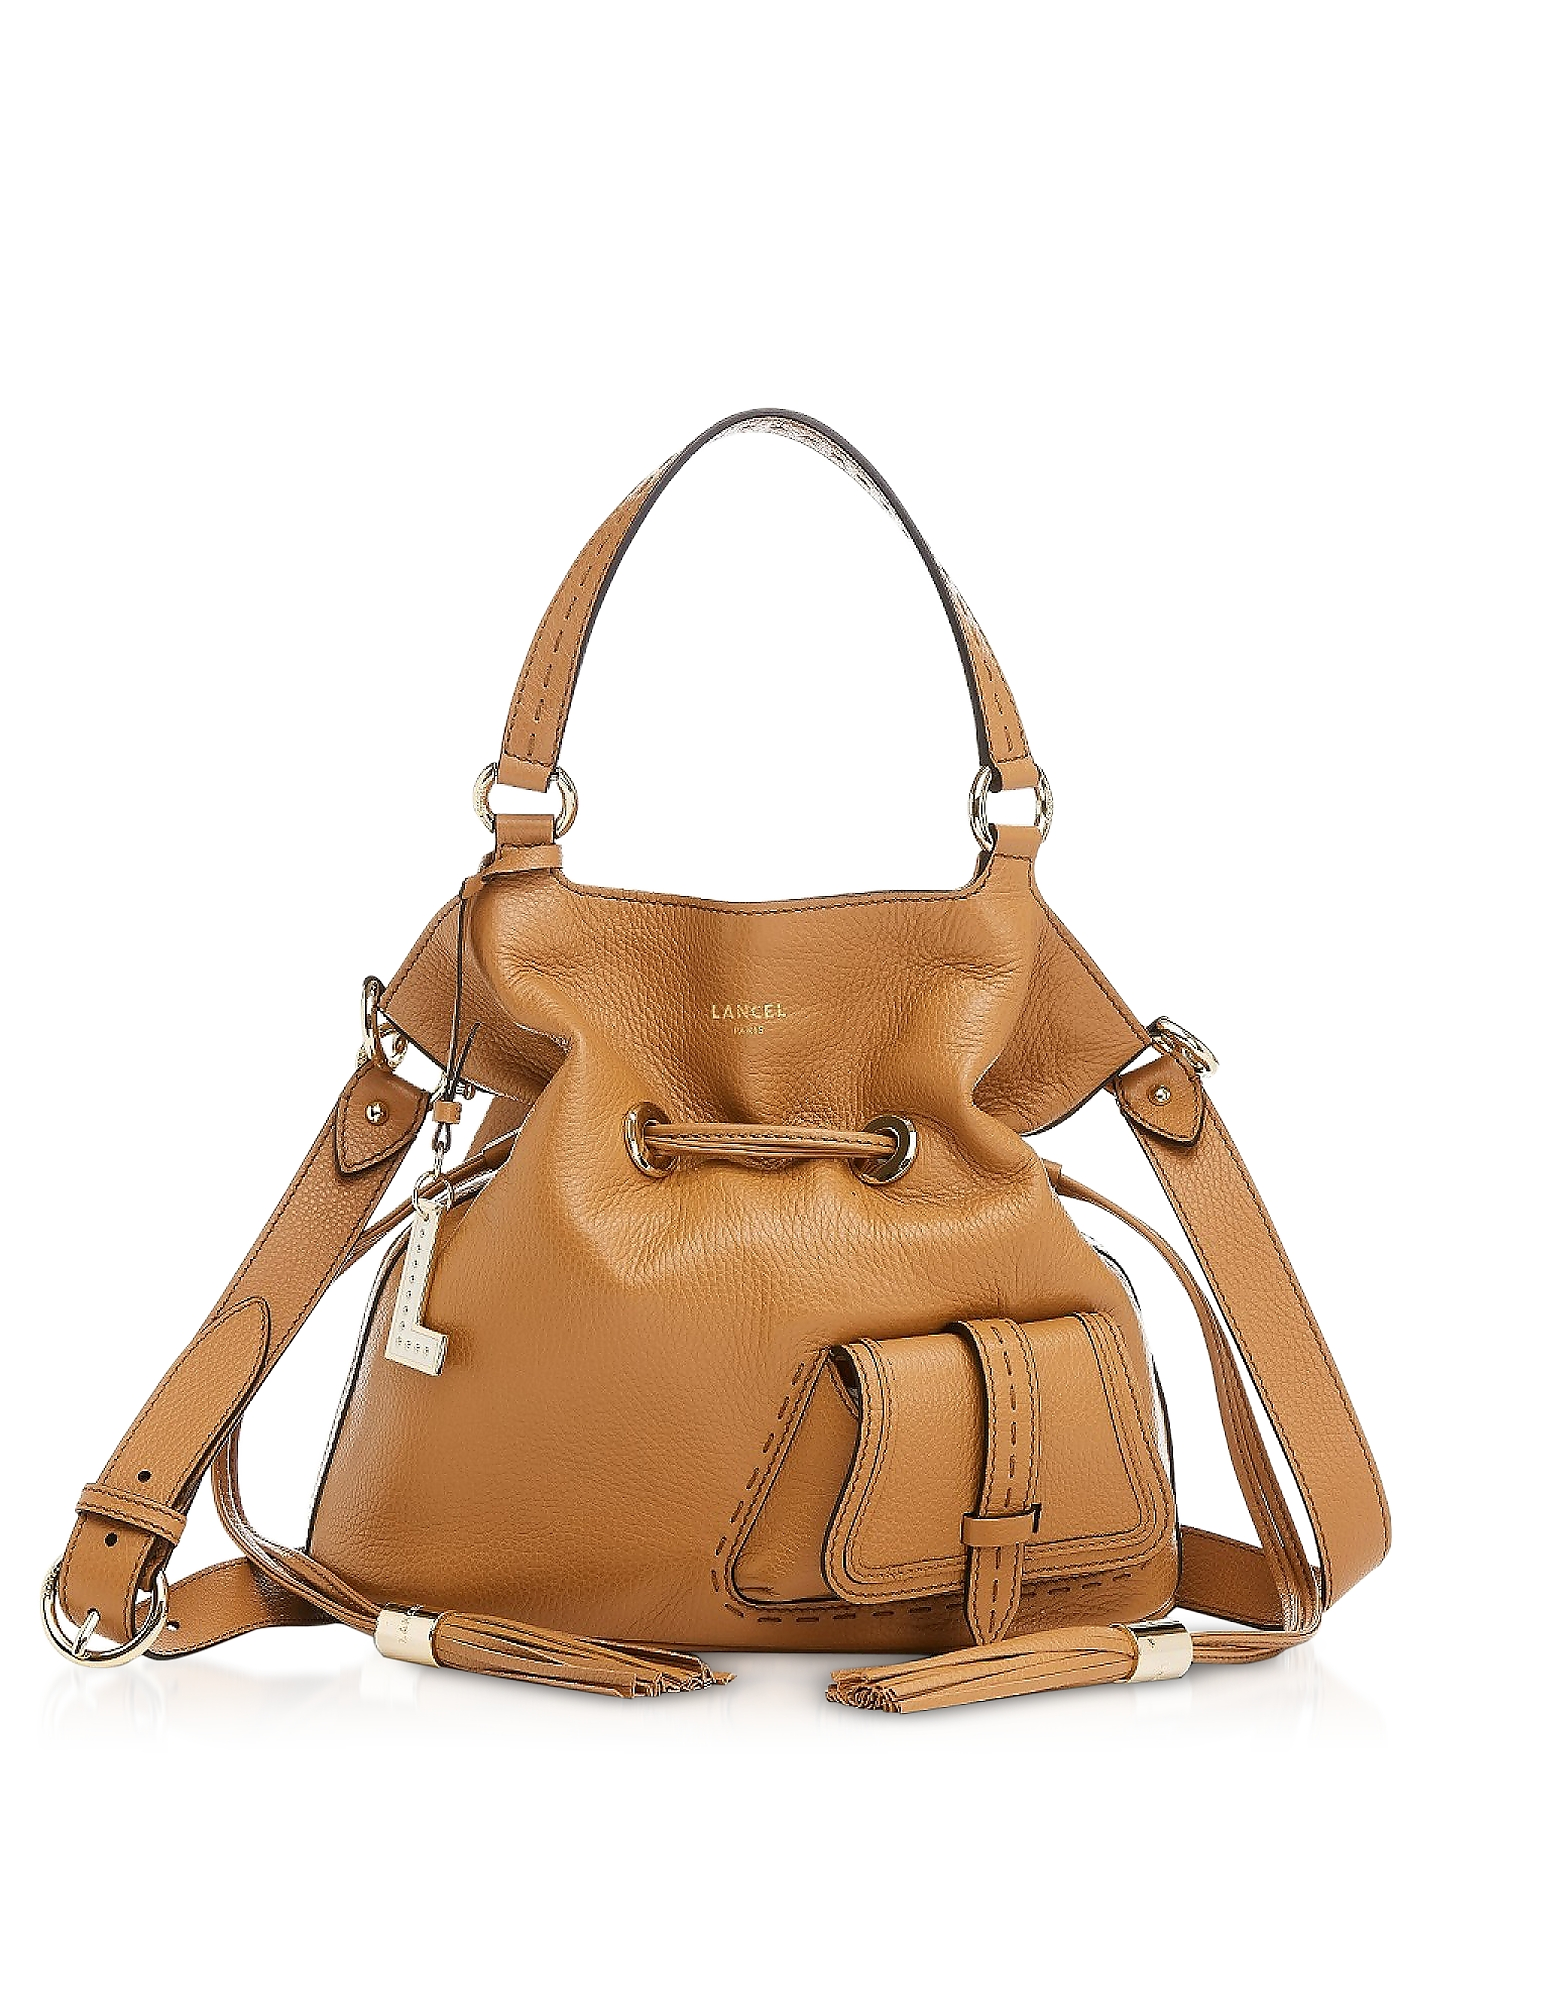 Lancel Designer Handbags, Premiere Medium Camel Leather Bucket Bag